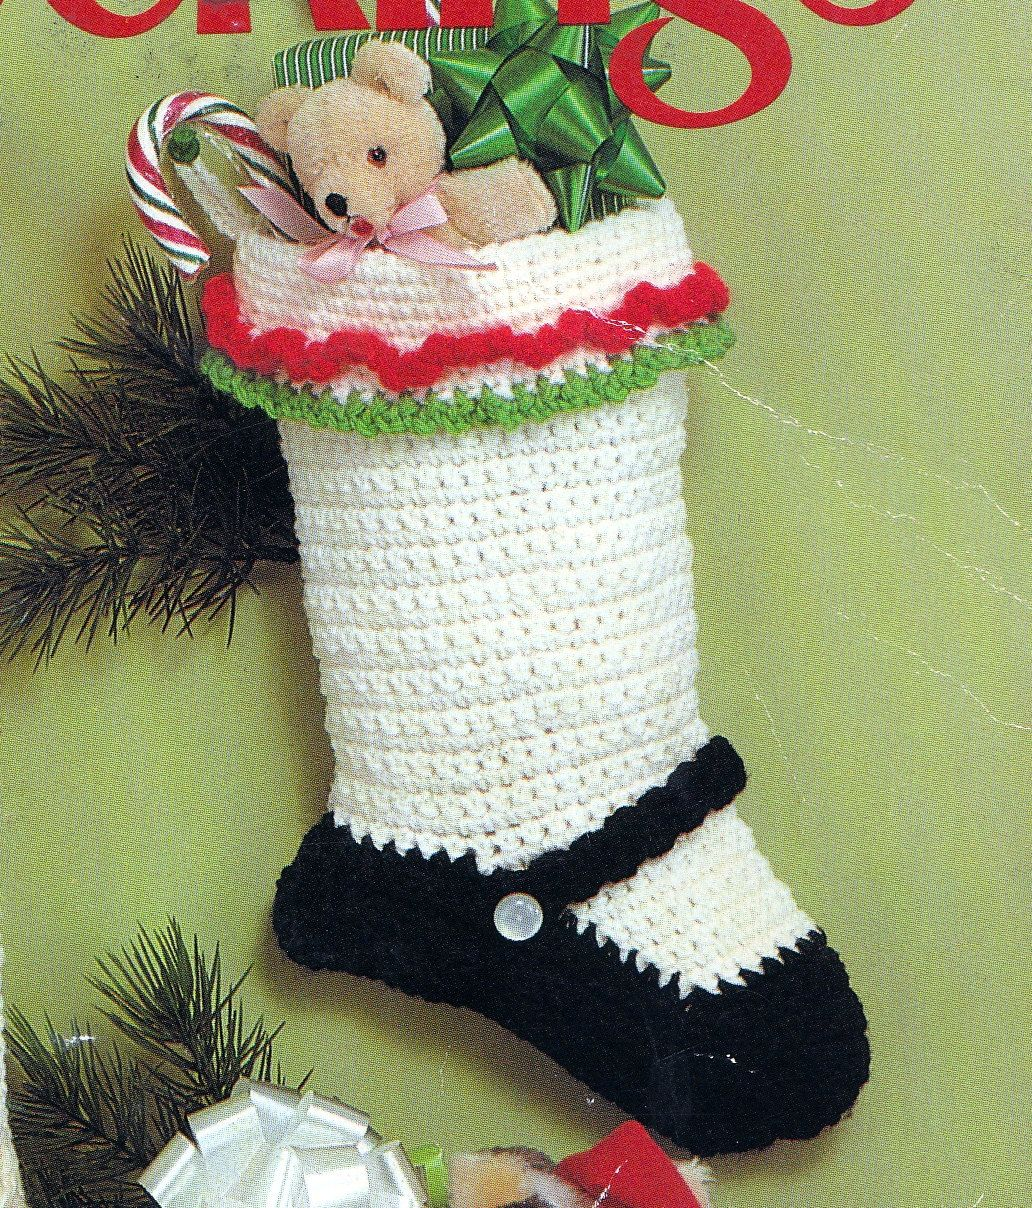 Crochet christmas stocking mary jane vintage crocheting pdf crochet christmas stocking mary jane vintage crocheting pdf pattern 250 via etsy bankloansurffo Image collections